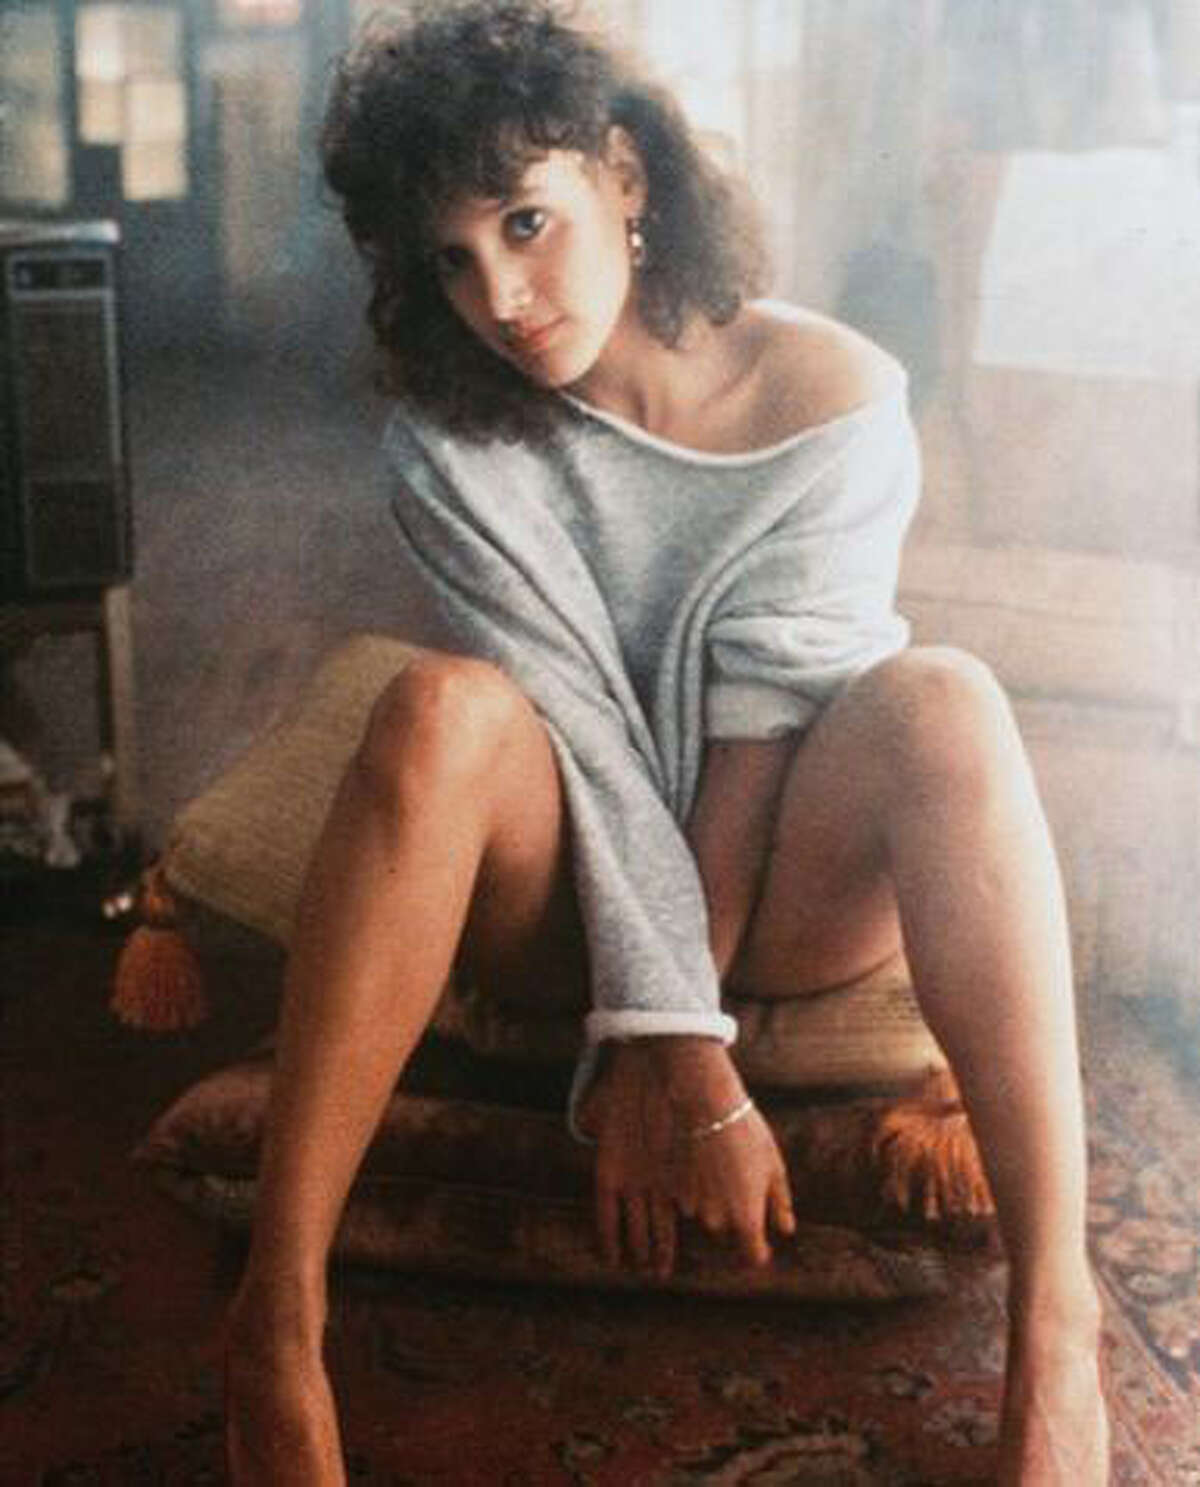 Flashdance - 1983 This is the godmother of inspirational dance movies: Alex Owen (Jennifer Beals) is a working-class Pittsburg woman, making her living as a welder and an exotic dancer, but her dream is to get into ballet school. Soundtrack (and a good way to describe watching this movie):